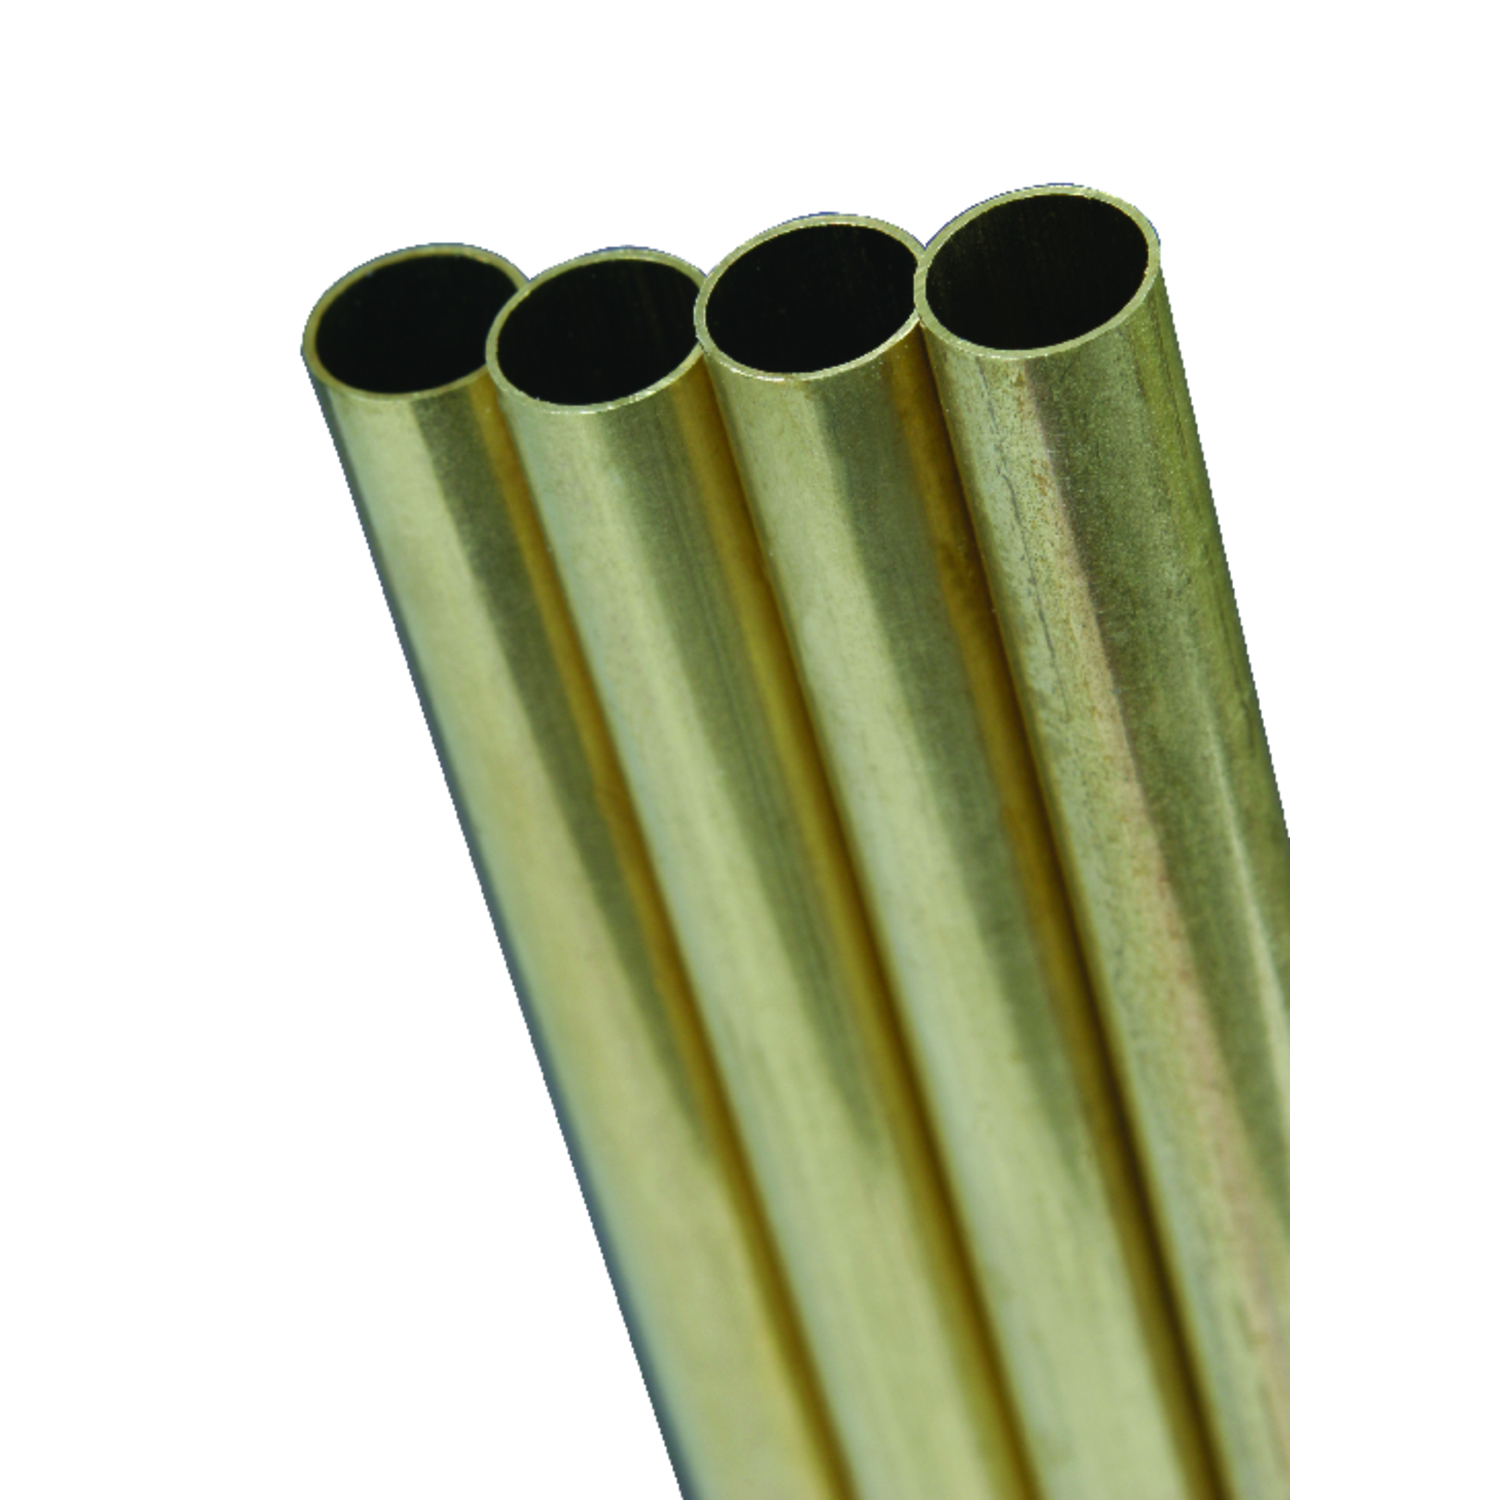 K&S  12 in. L x 9/16 in. Dia. Brass Tube  1  Round